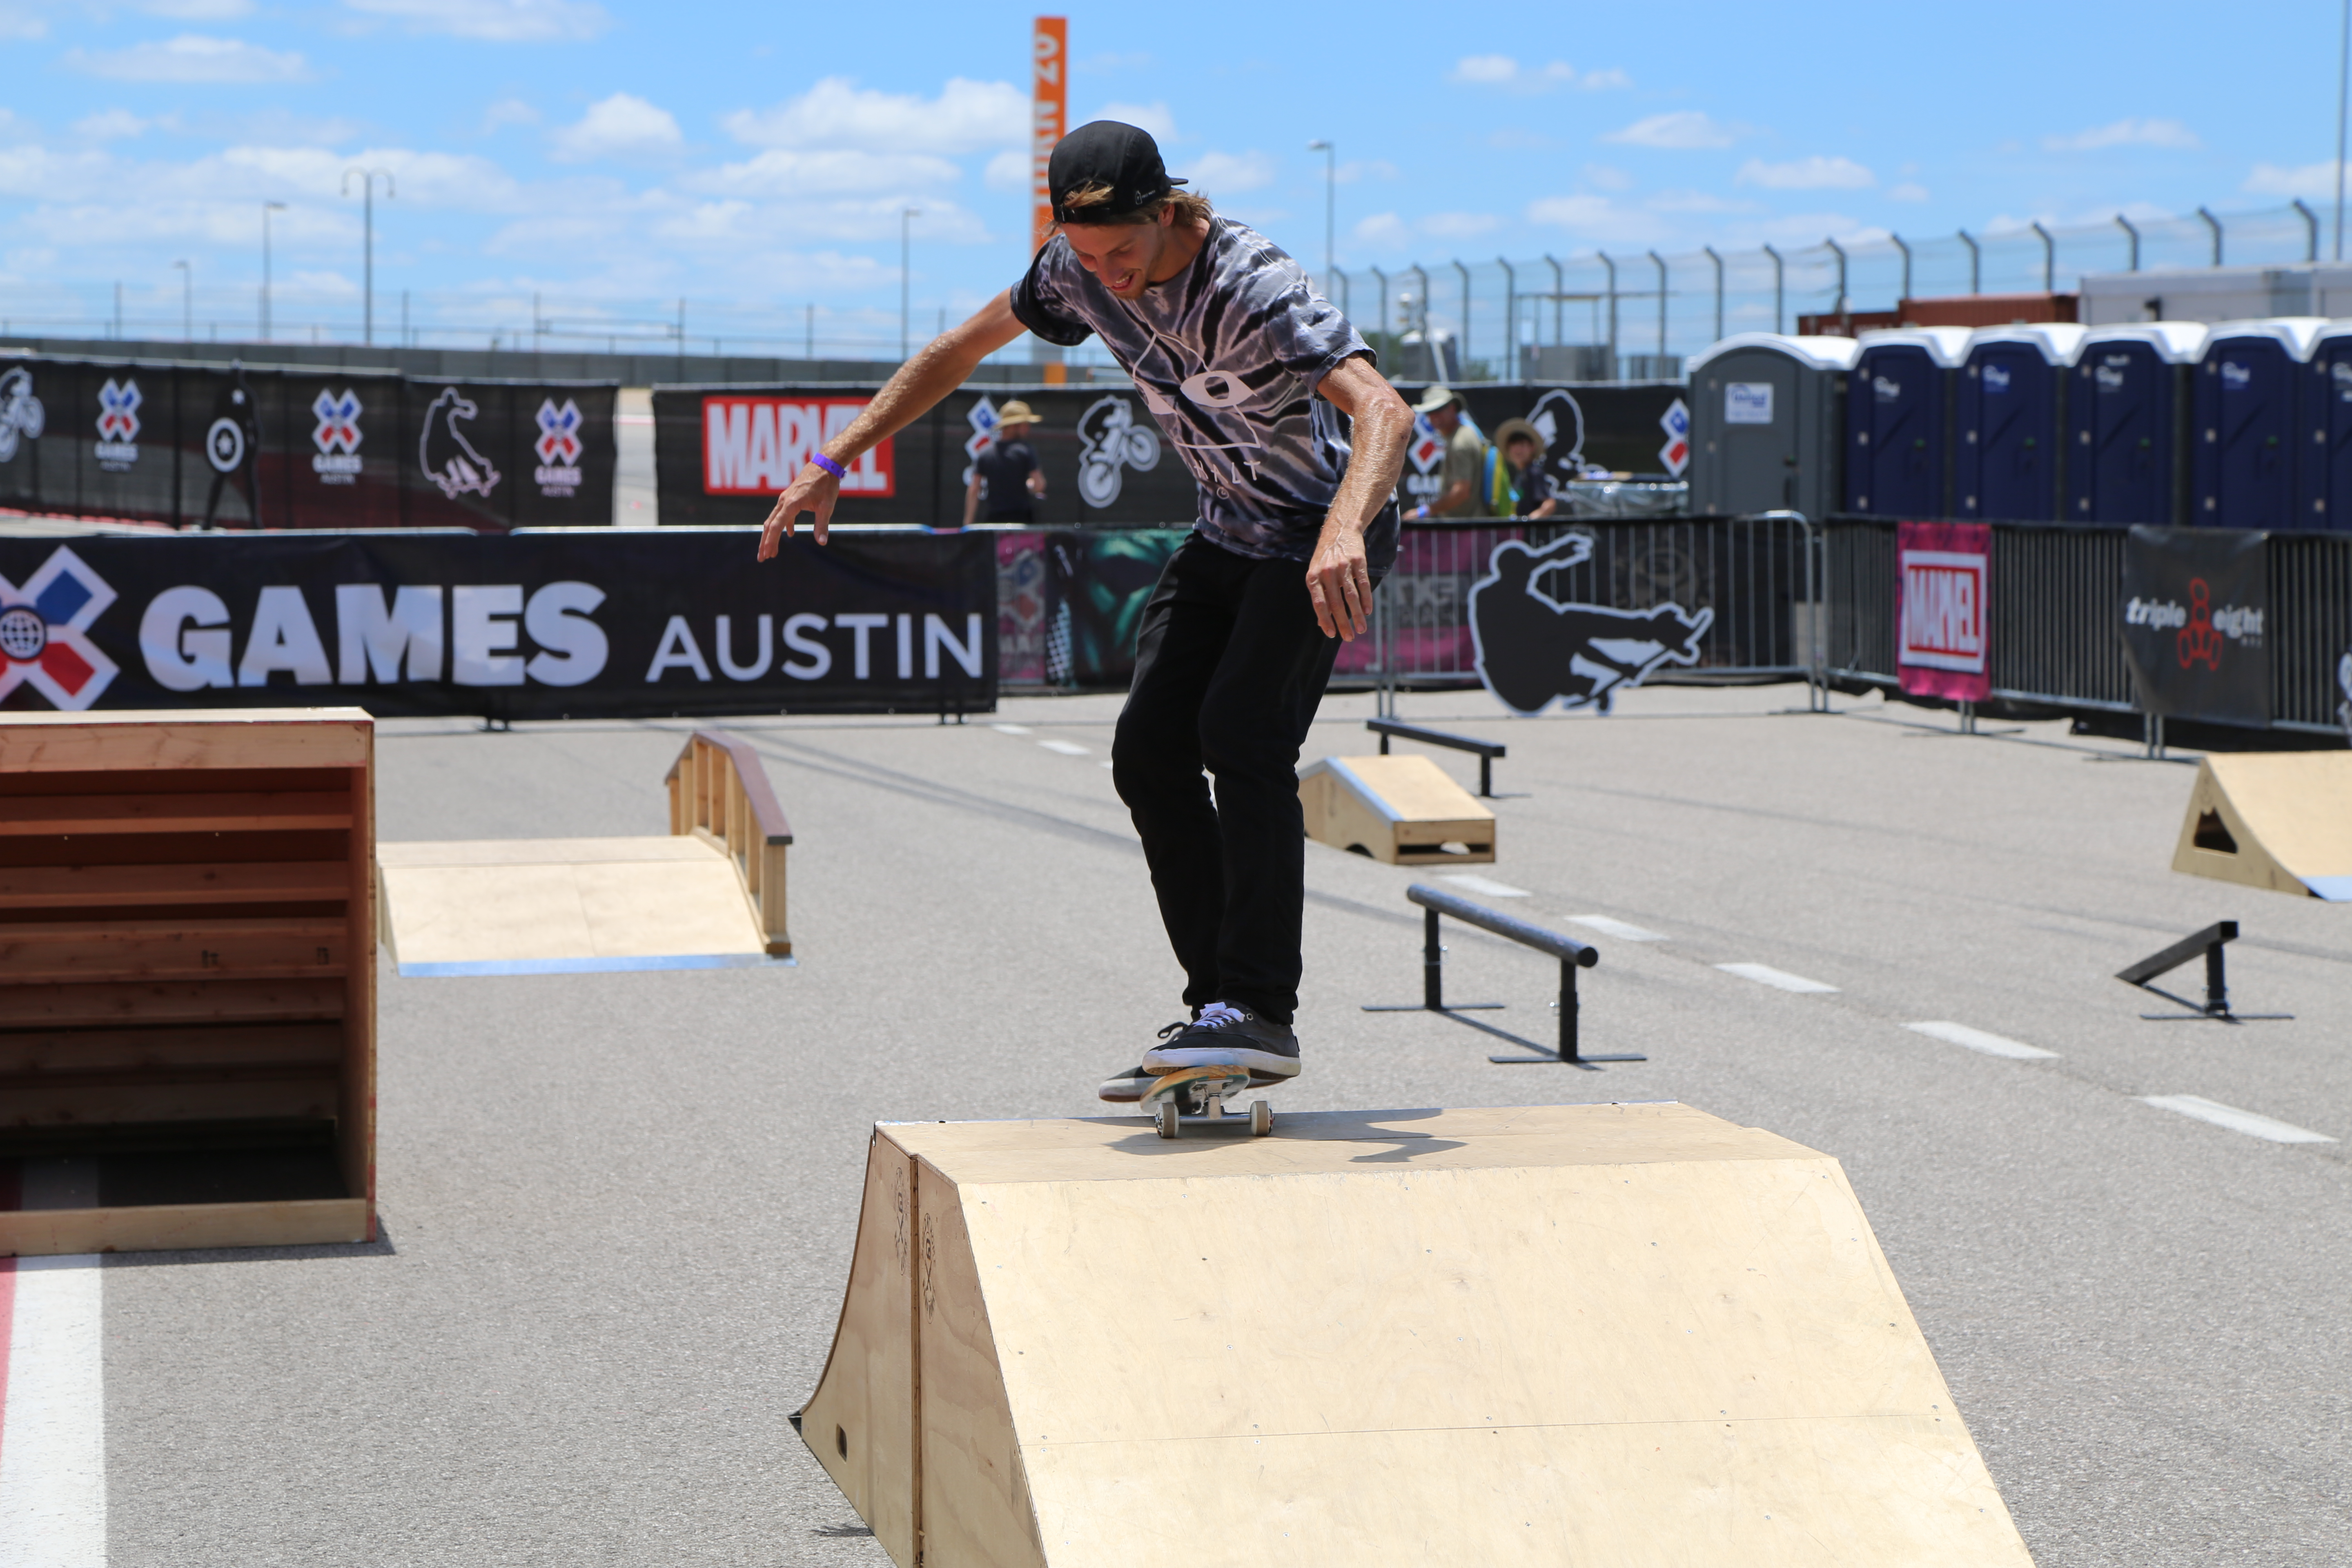 Jaws Hamoki attempts to skate on a 1960s era skateboard during Innoskate at X Games.